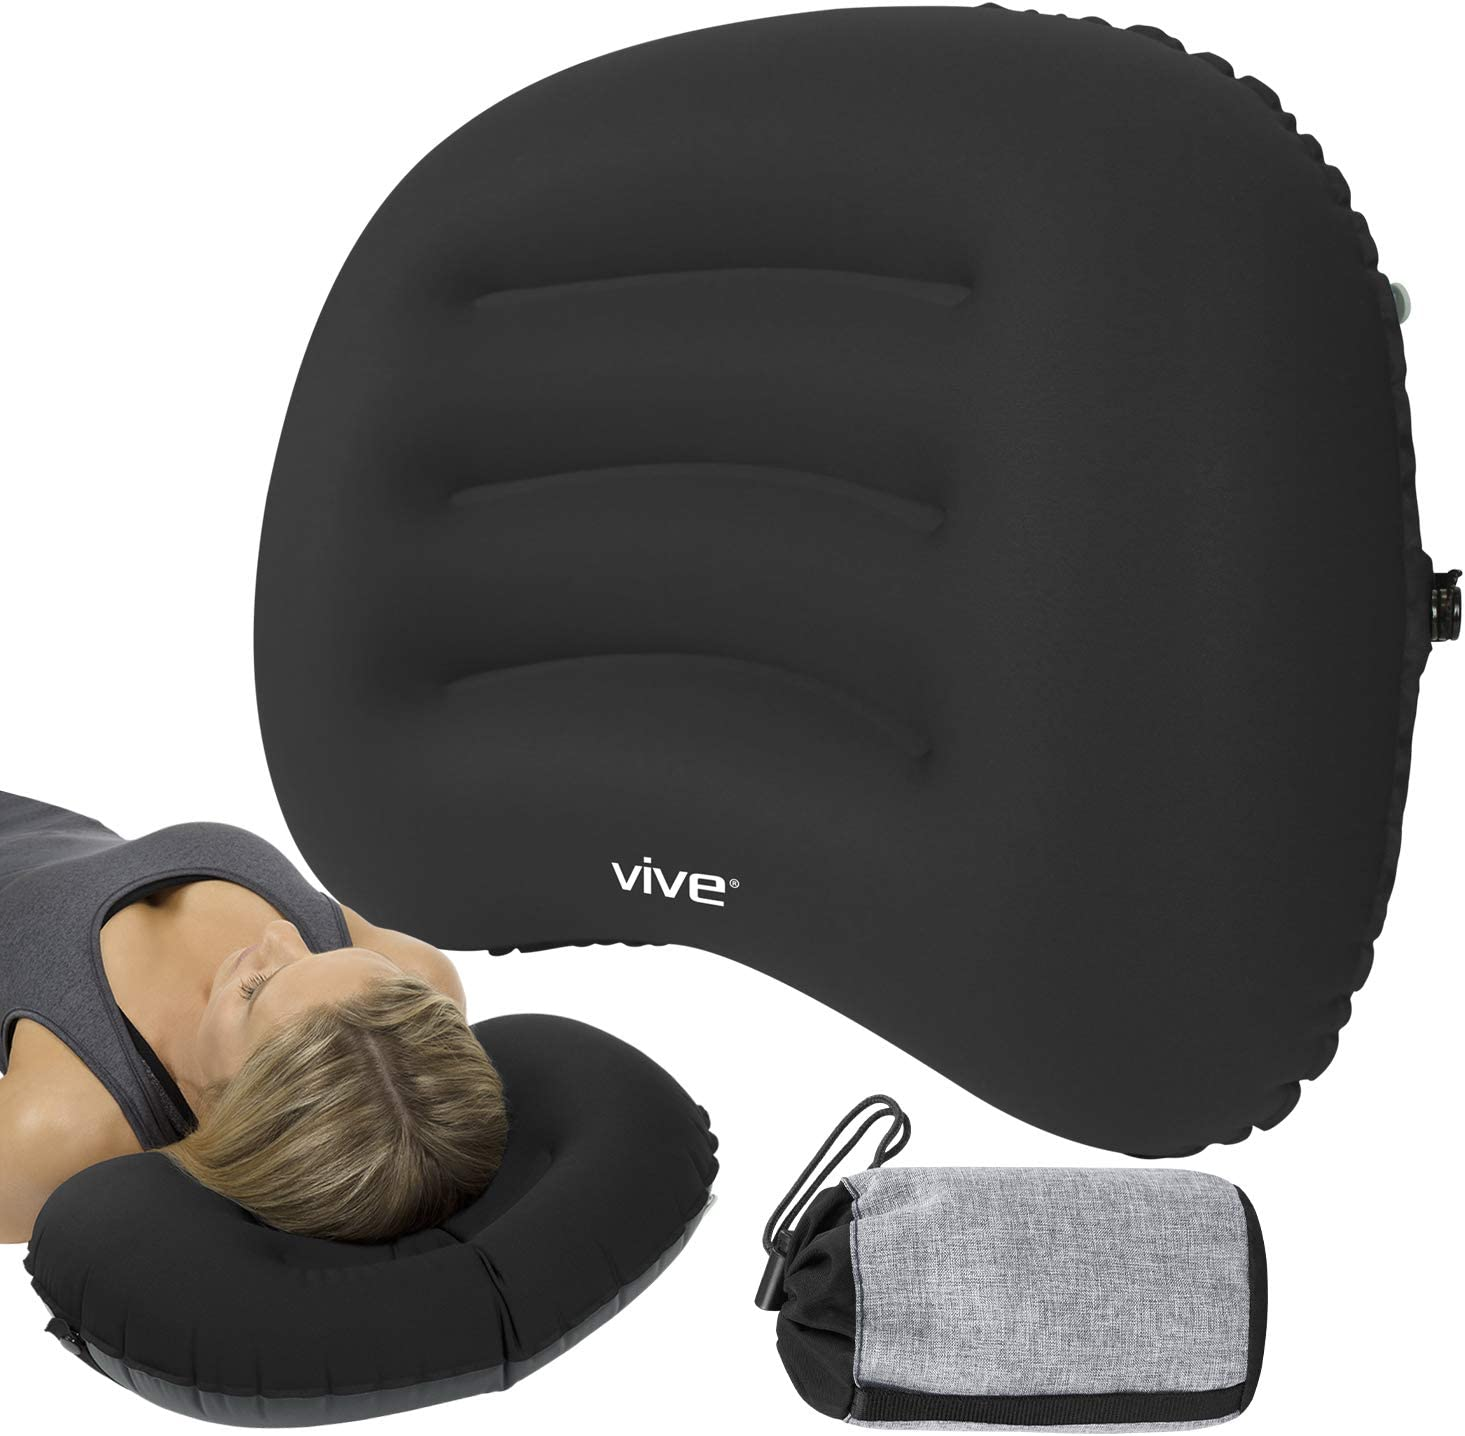 61XuW93o0GL. AC SL1500 - What Is The Best Car Cushion For Sciatica and Lower Back Pain? - ChairPicks